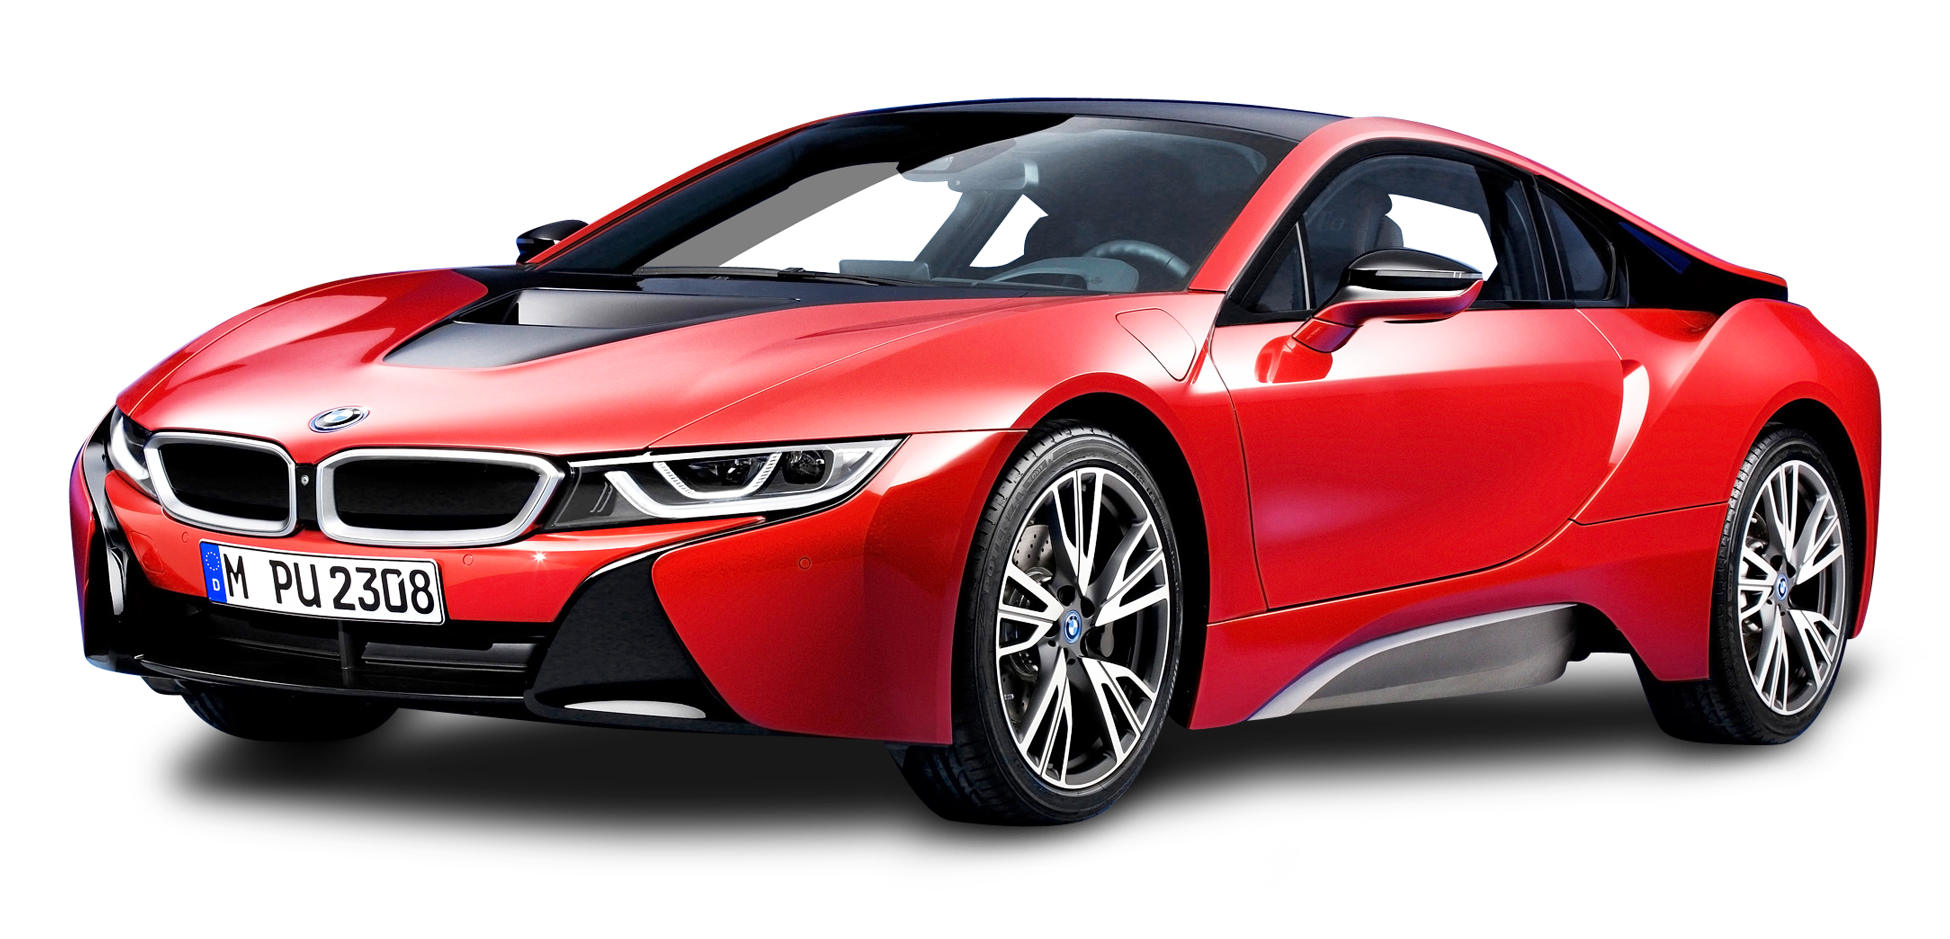 BMW i8 Protonic Red Car